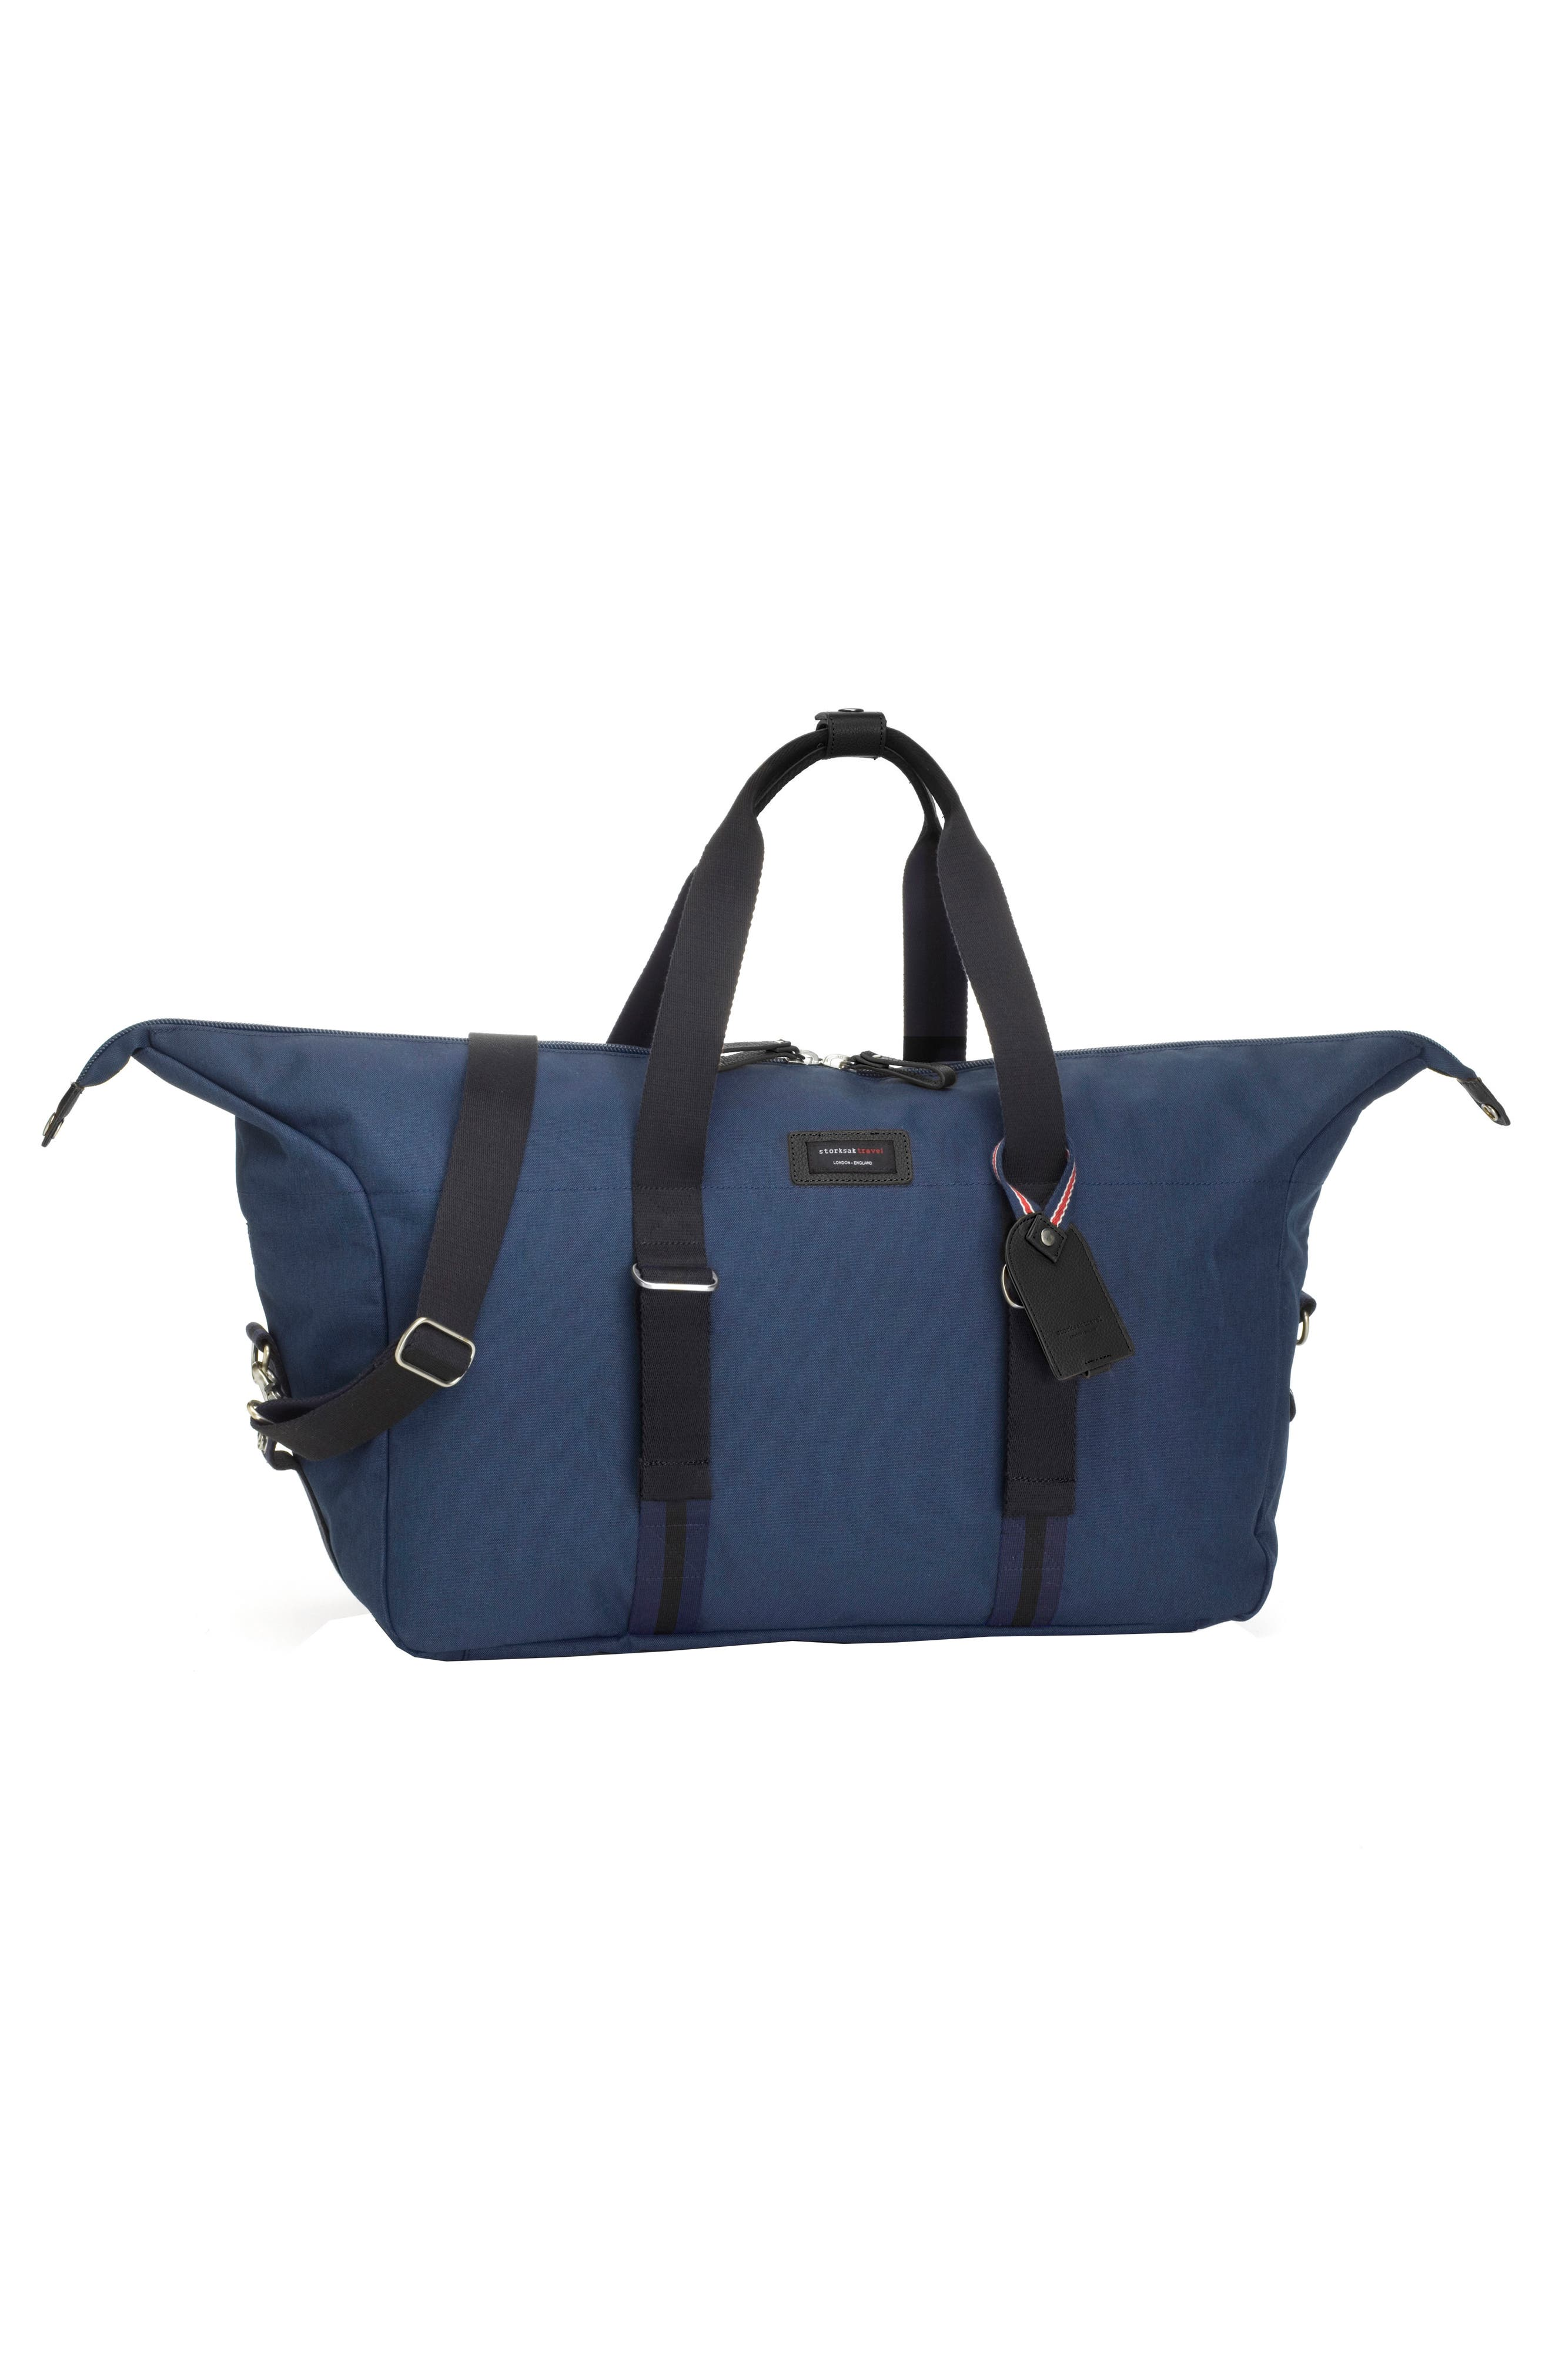 Travel Duffel with Hanging Organizer,                             Alternate thumbnail 3, color,                             NAVY